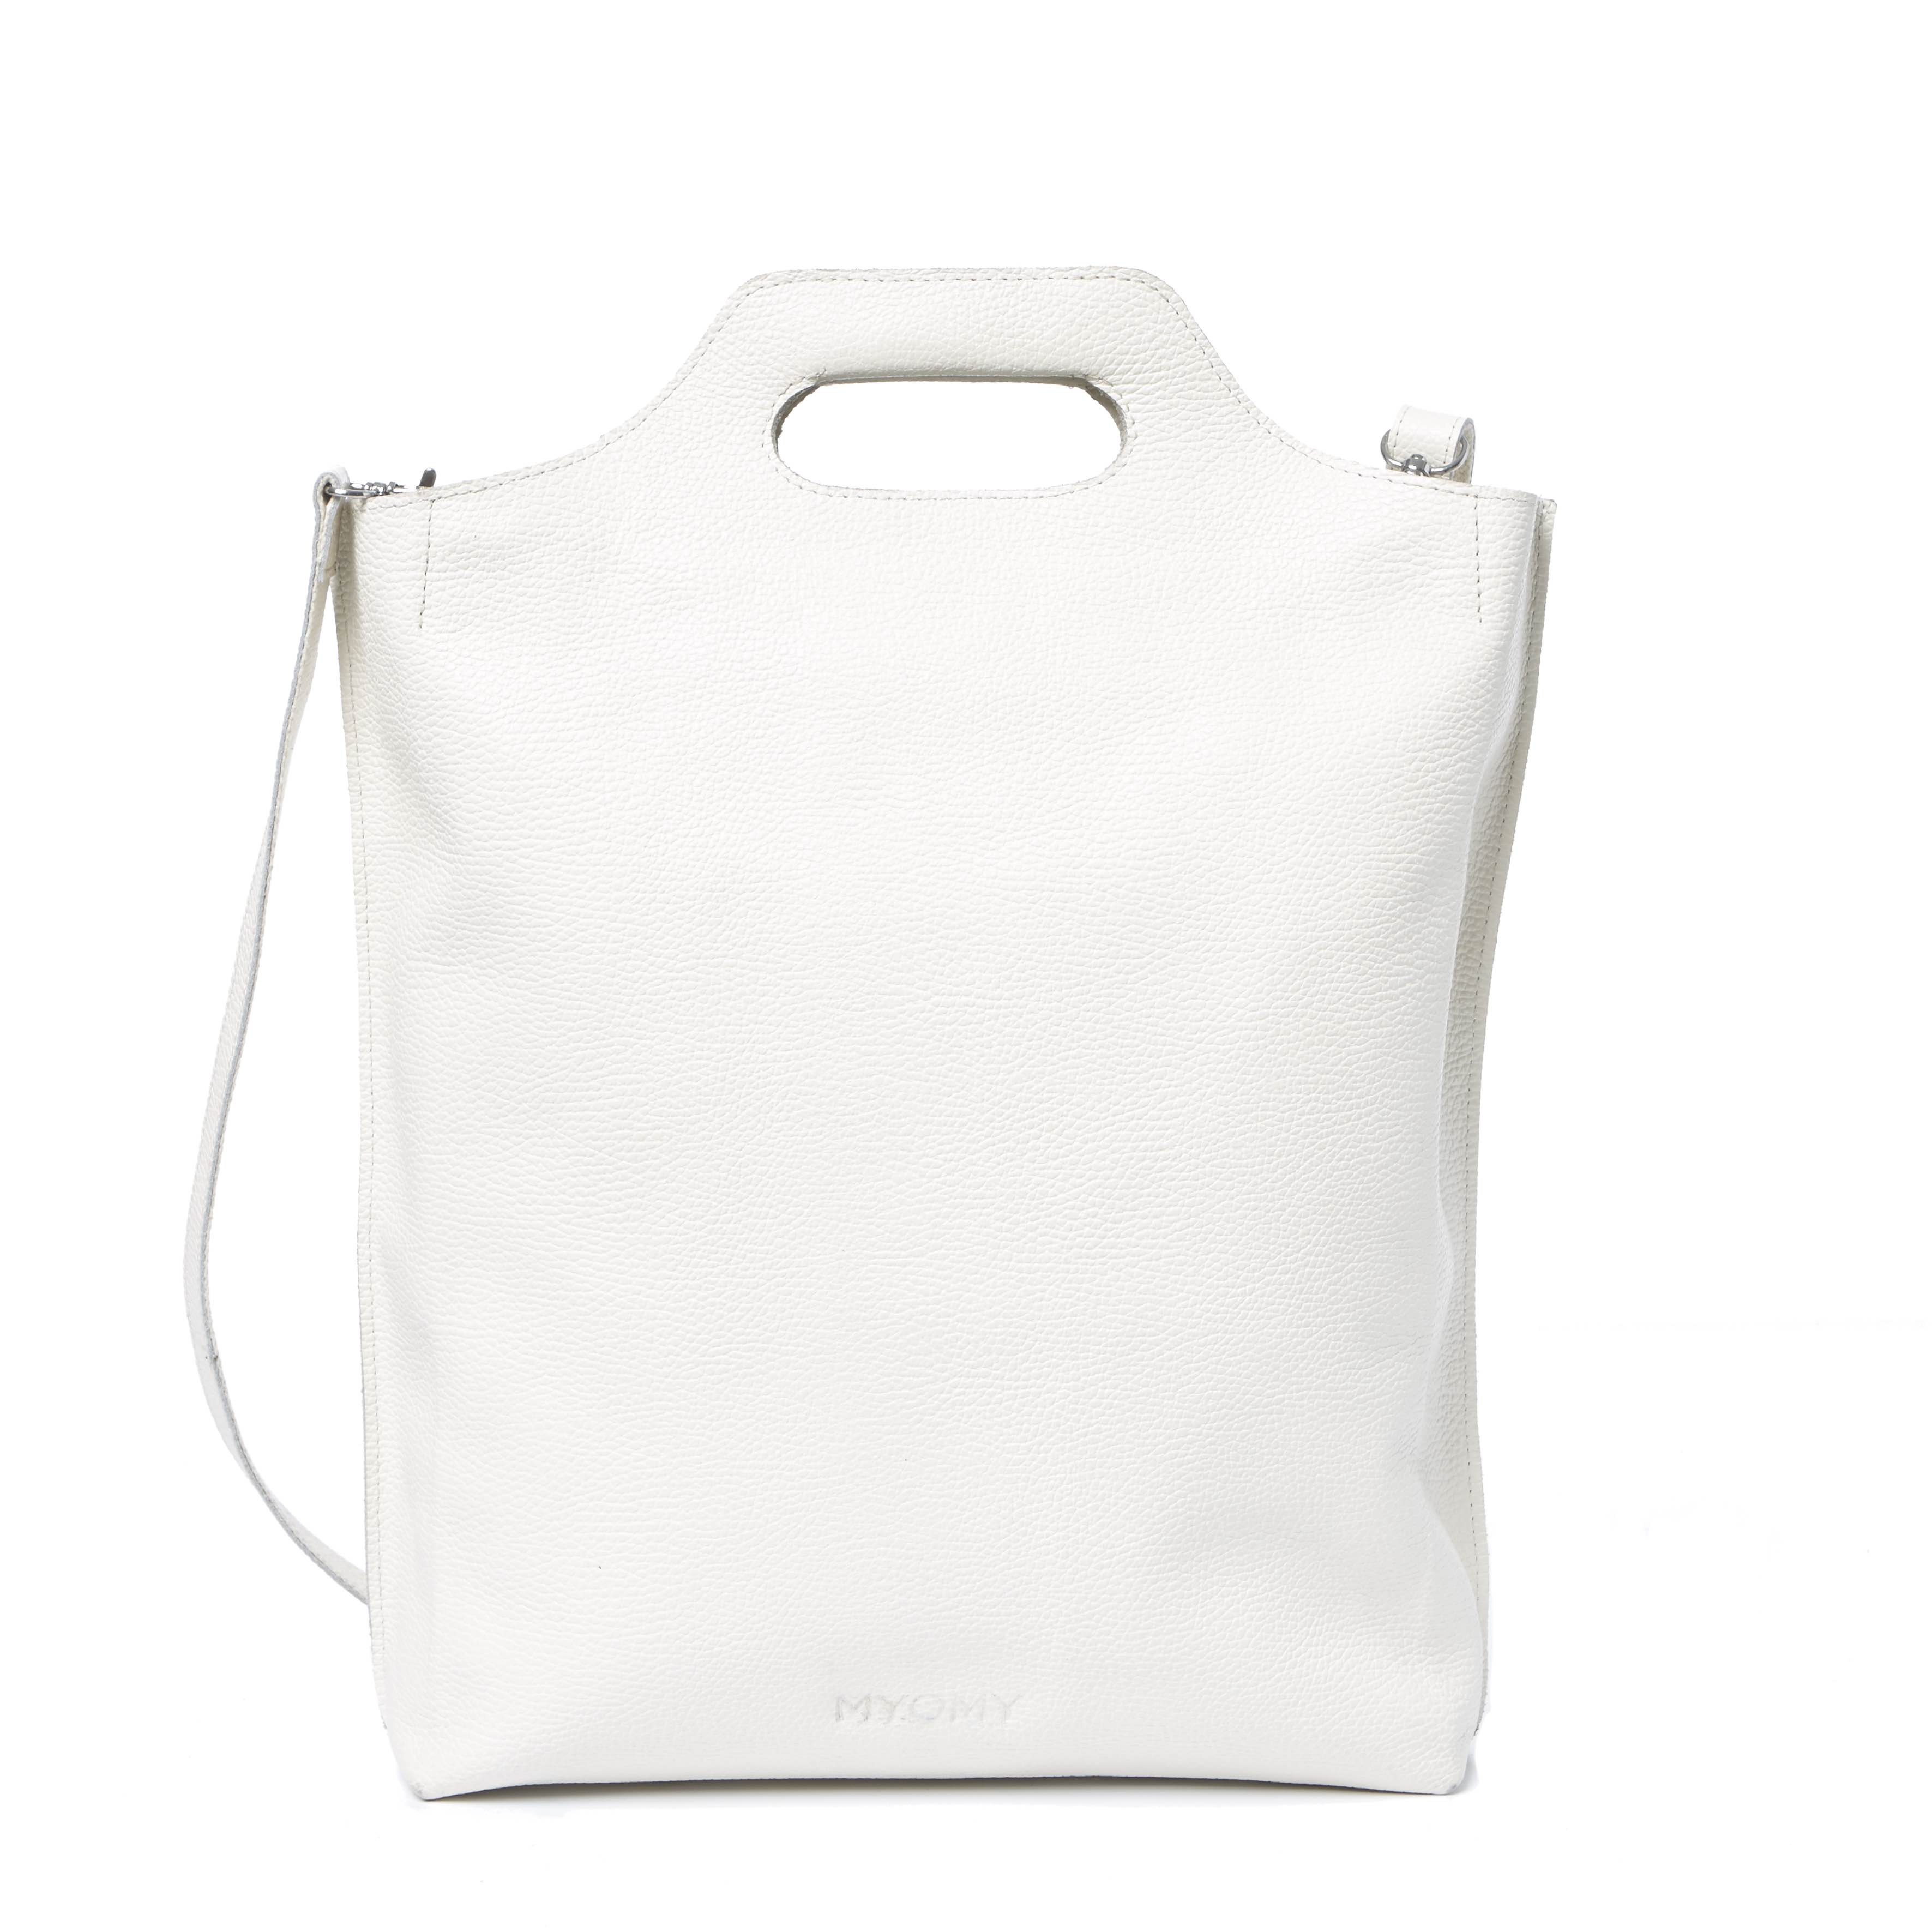 MY CARRY BAG Shopper – rambler white